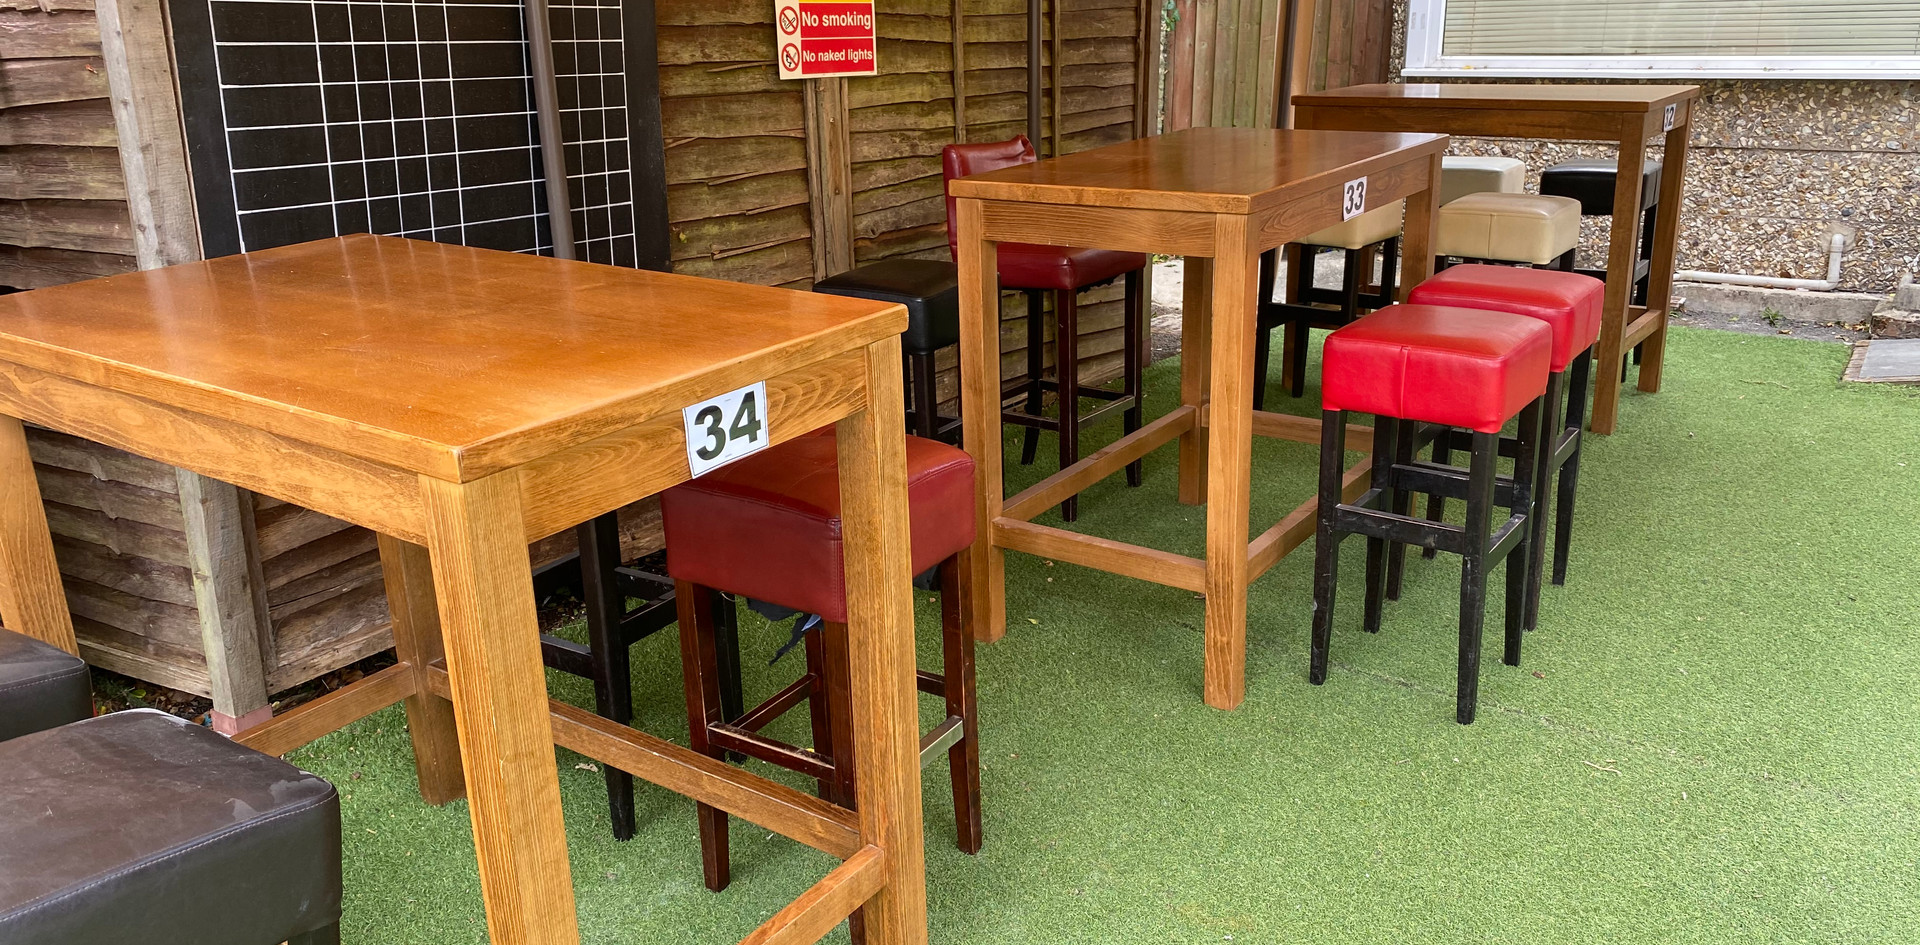 Undercover tables 32, 33 & 34